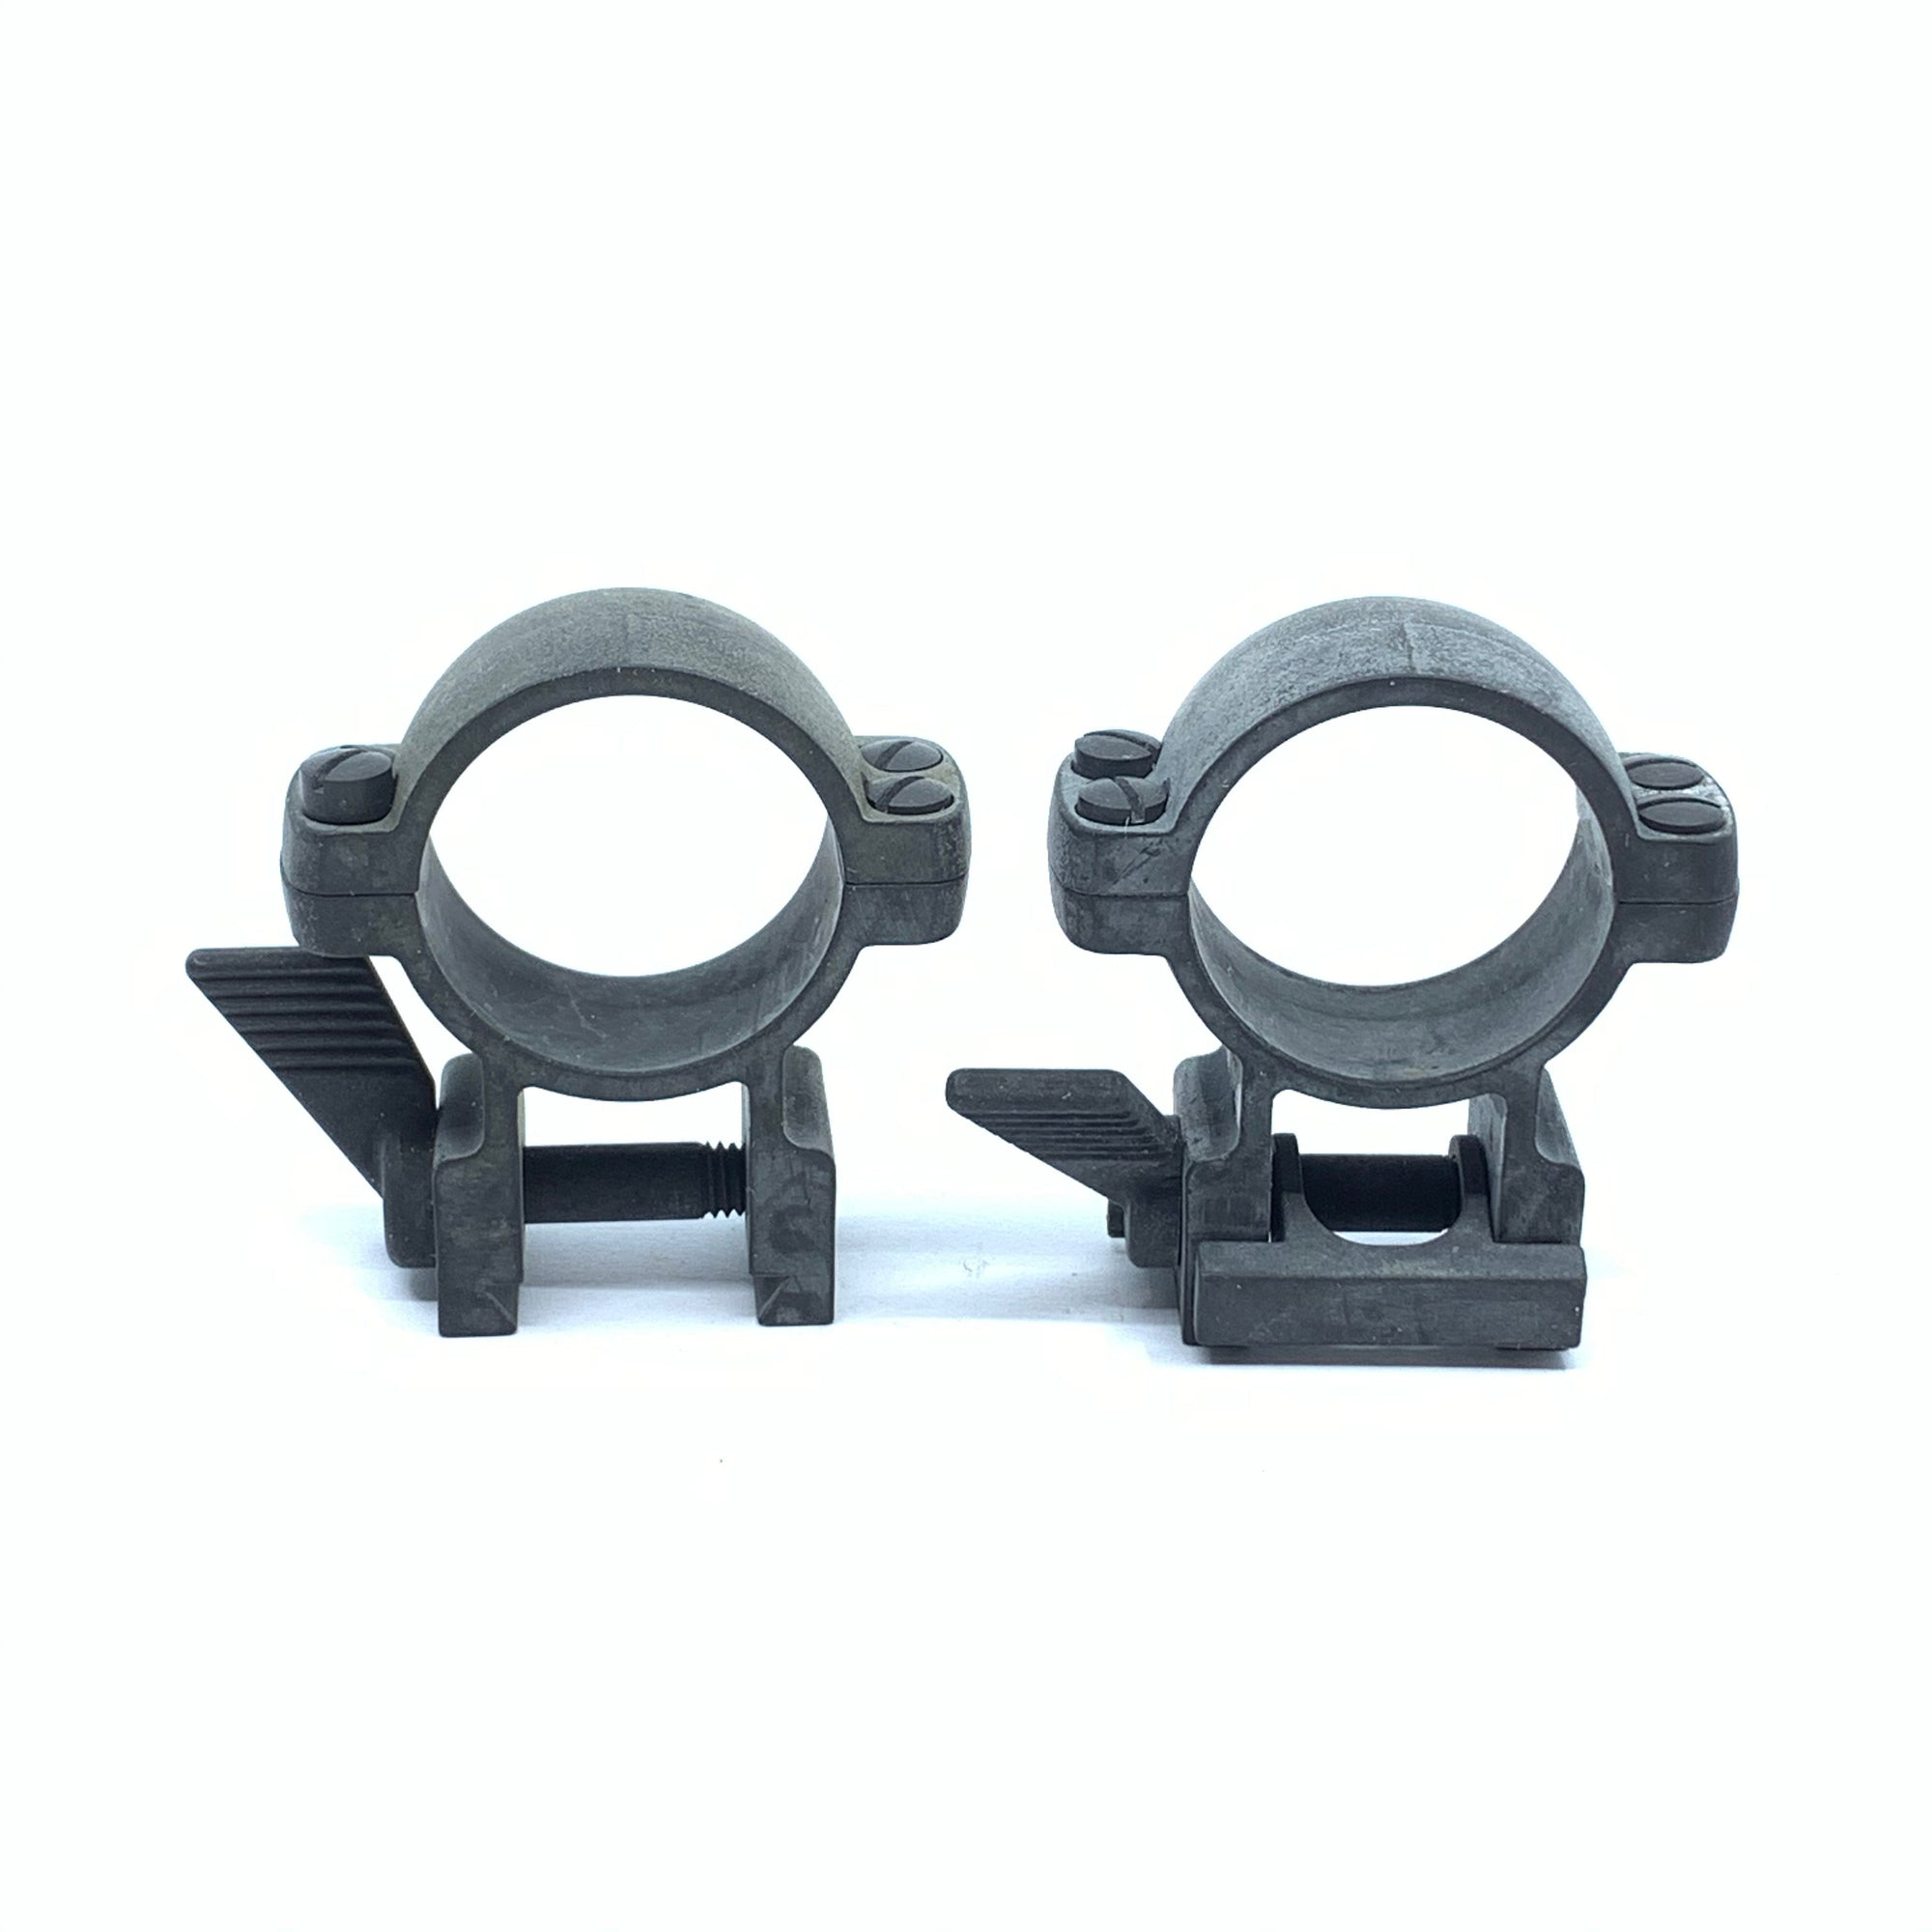 "Steyr Mannlicher Original 1"" Rings For SSG and SSG Police"